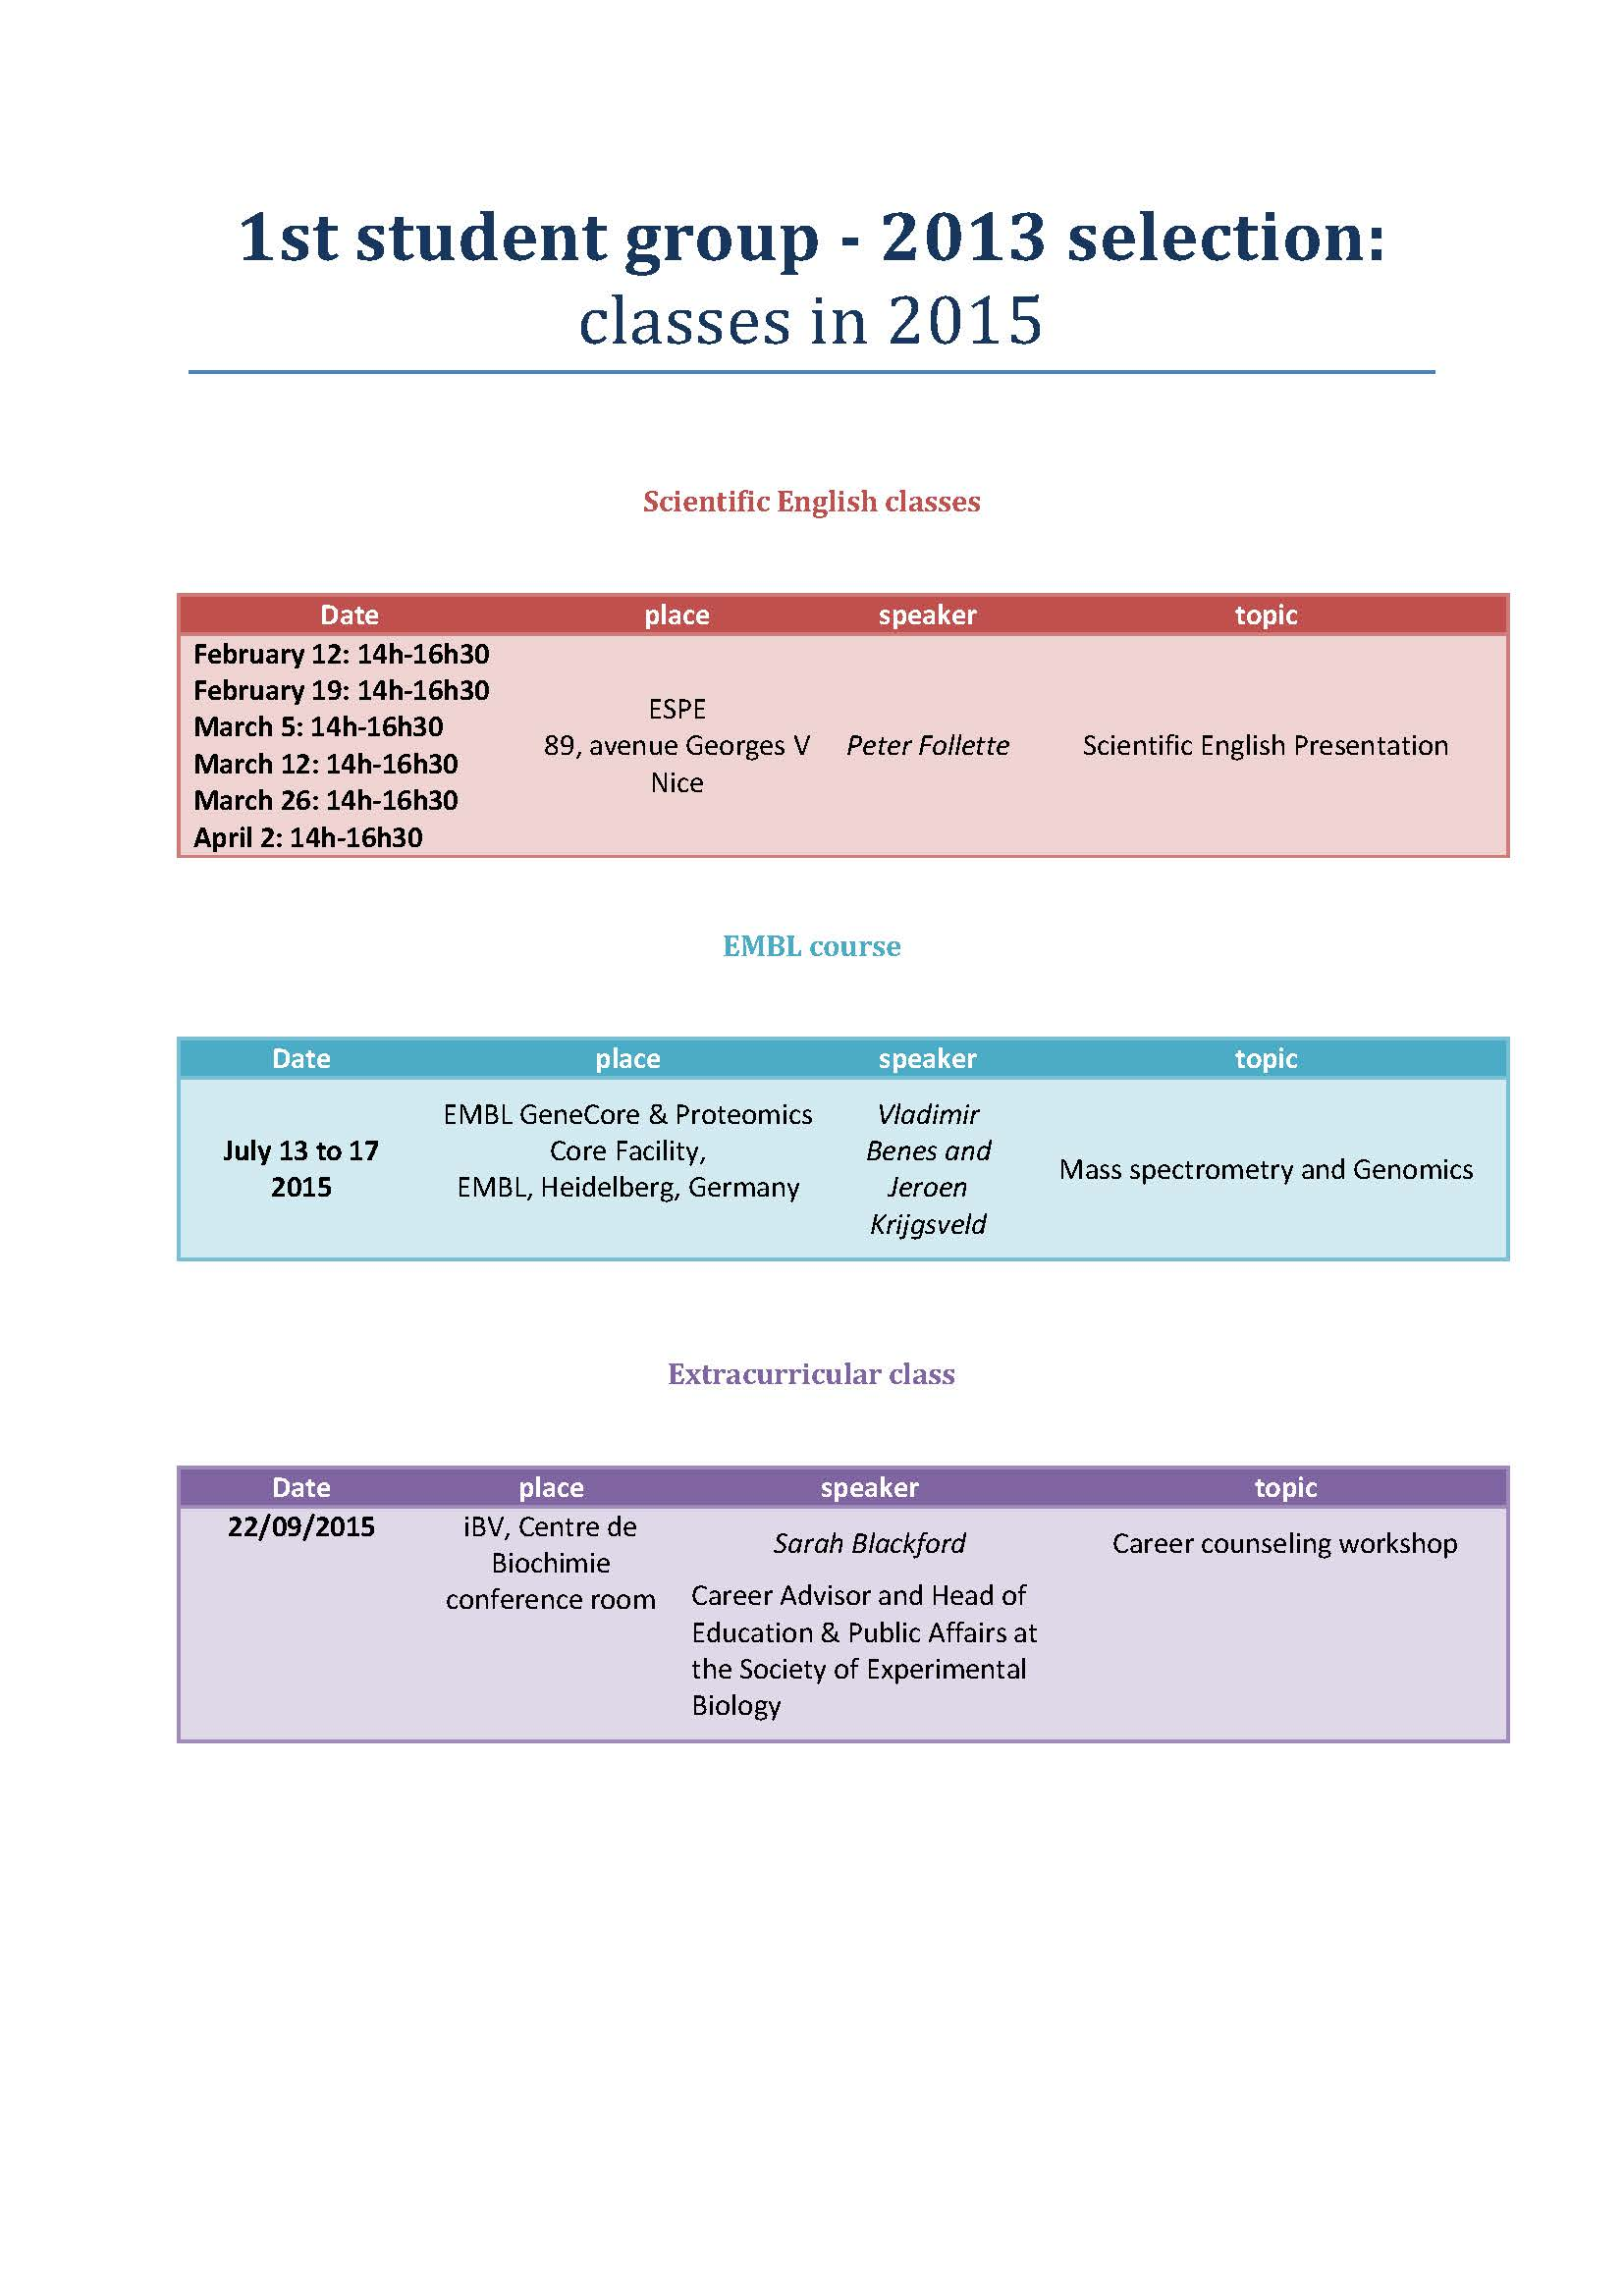 1st student group 2013 selection classes in 2015 (2)